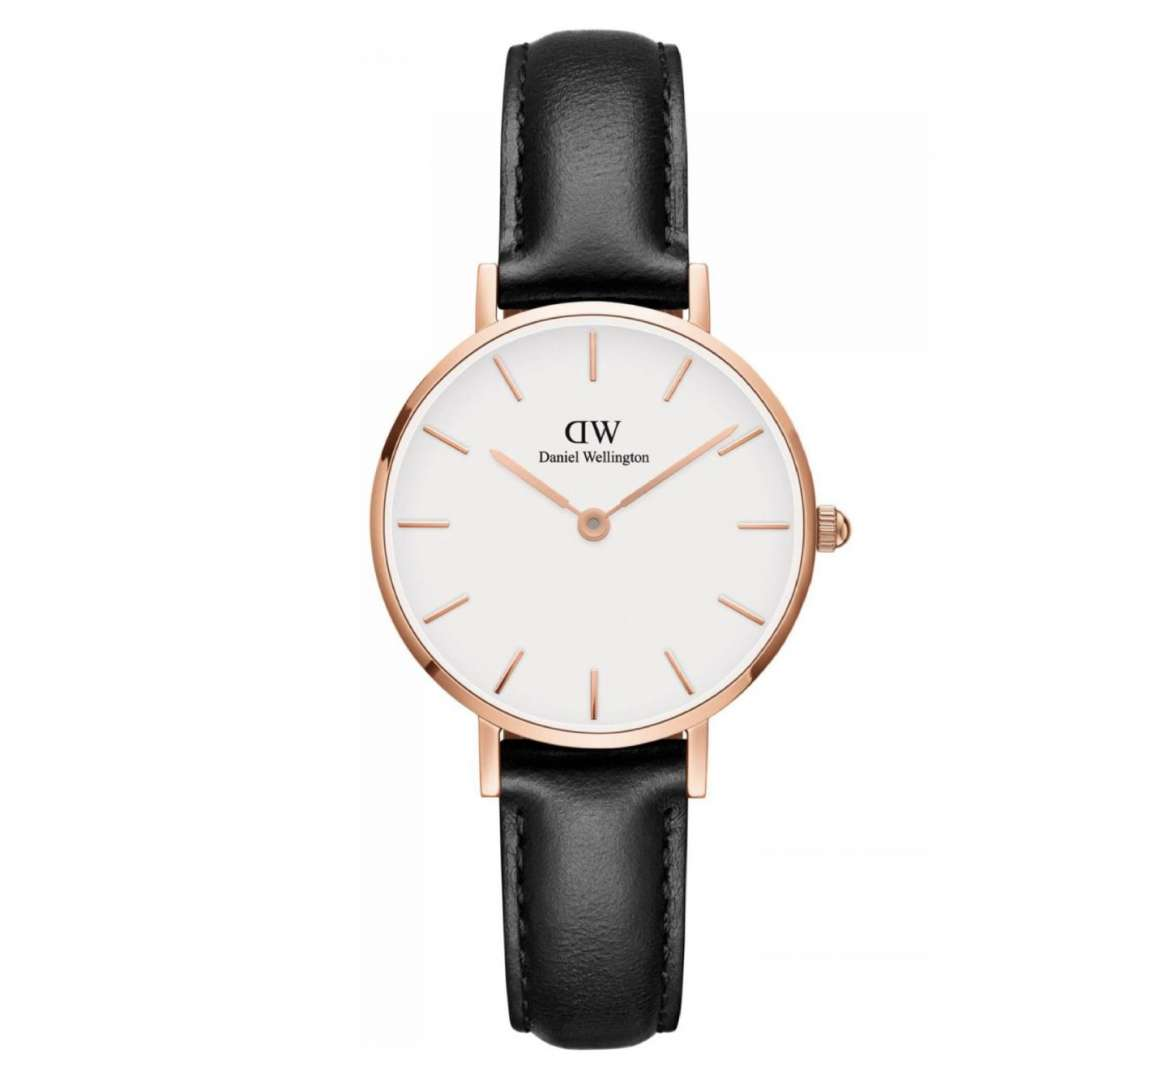 שעון יד אנלוגי daniel wellington DW00100230 דניאל וולינגטון